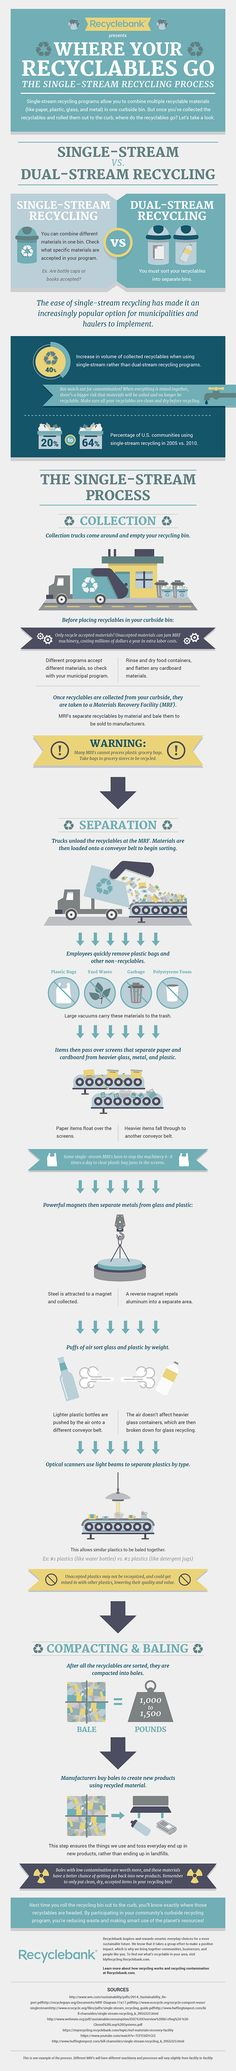 #infographic Where Do Your Recyclables Go? Great infographic explaining #recycling processes for all materials